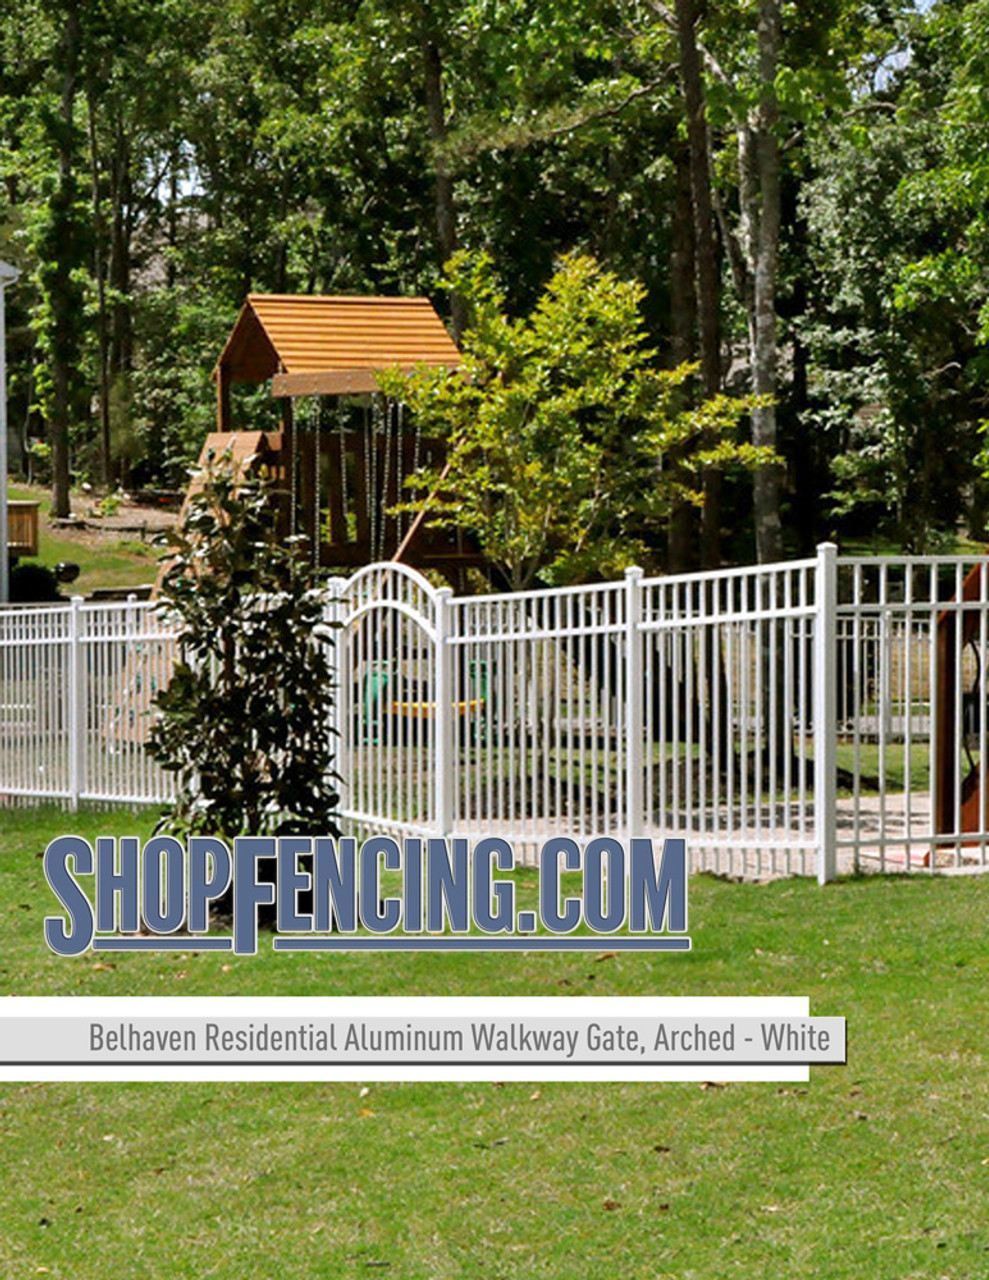 White Residential Belhaven Aluminum Walkway Gate From ShopFencing.com